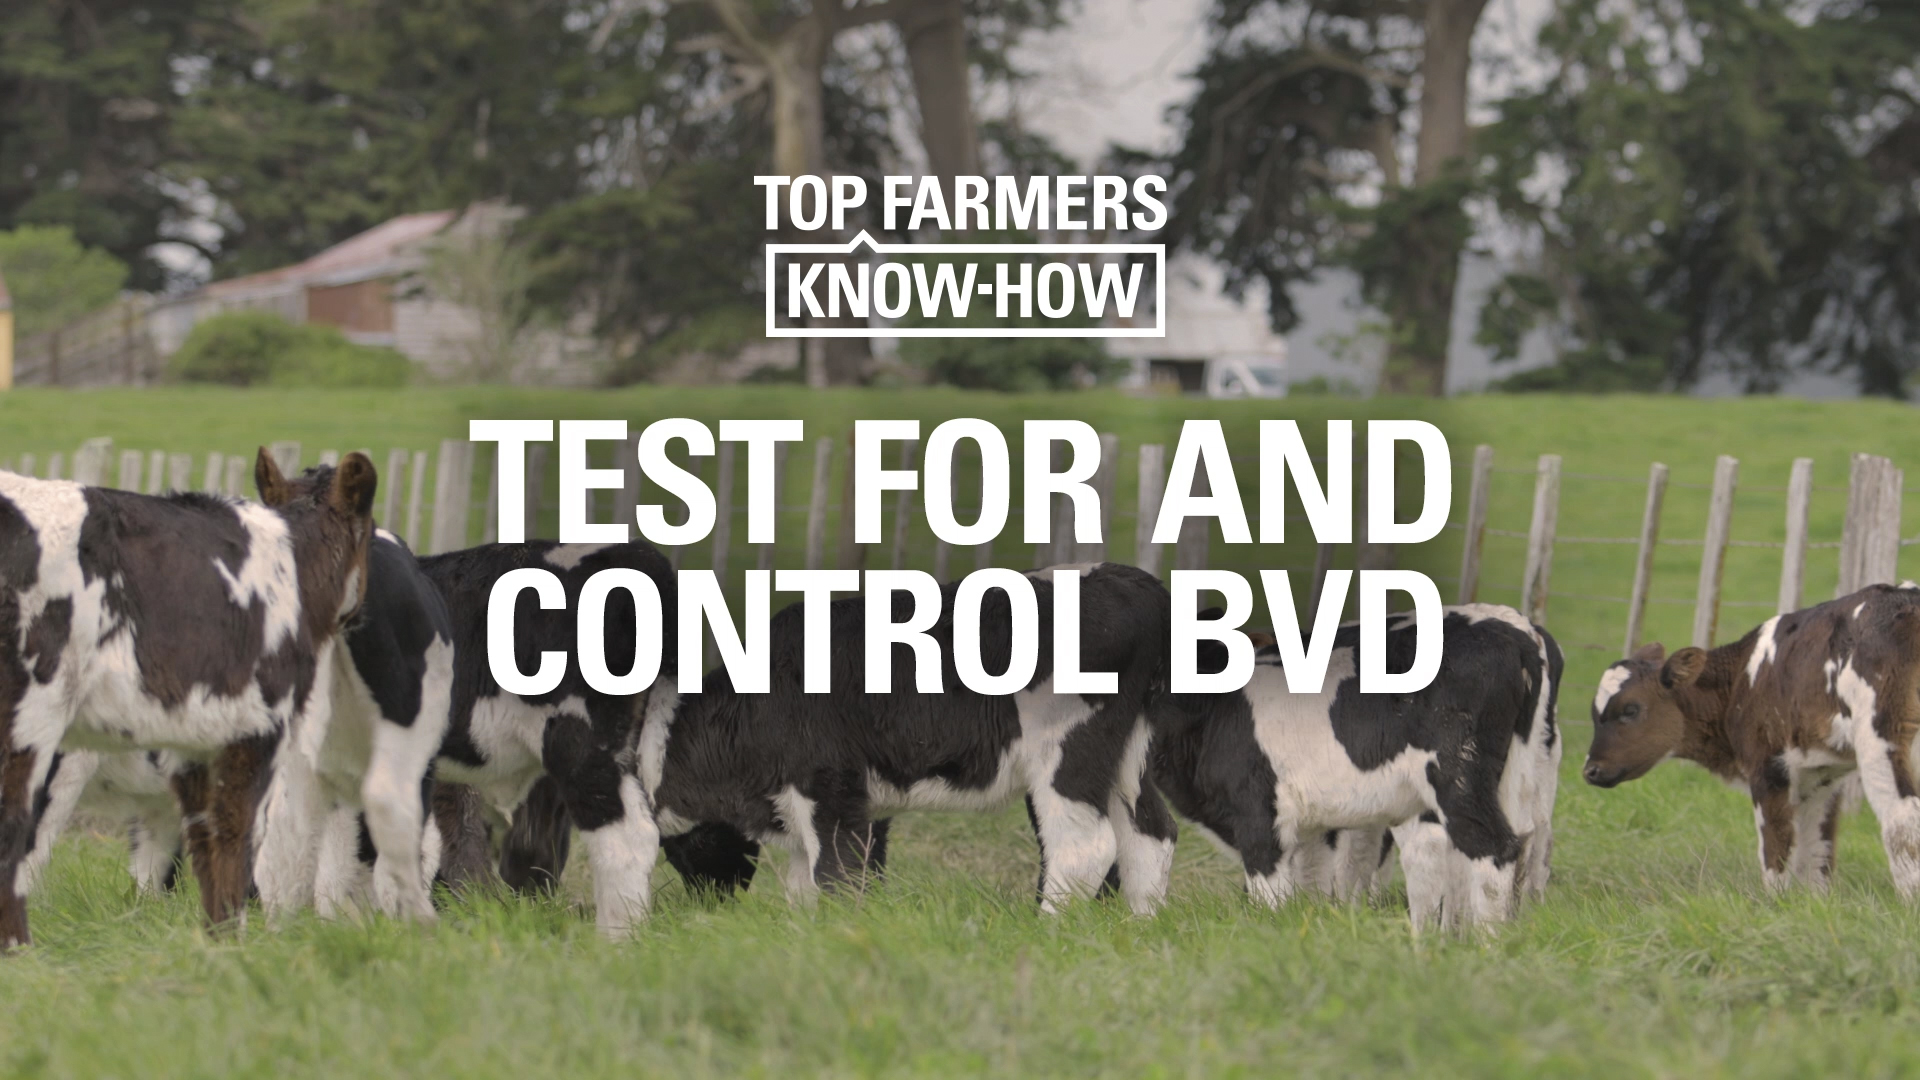 Test for and control BVD